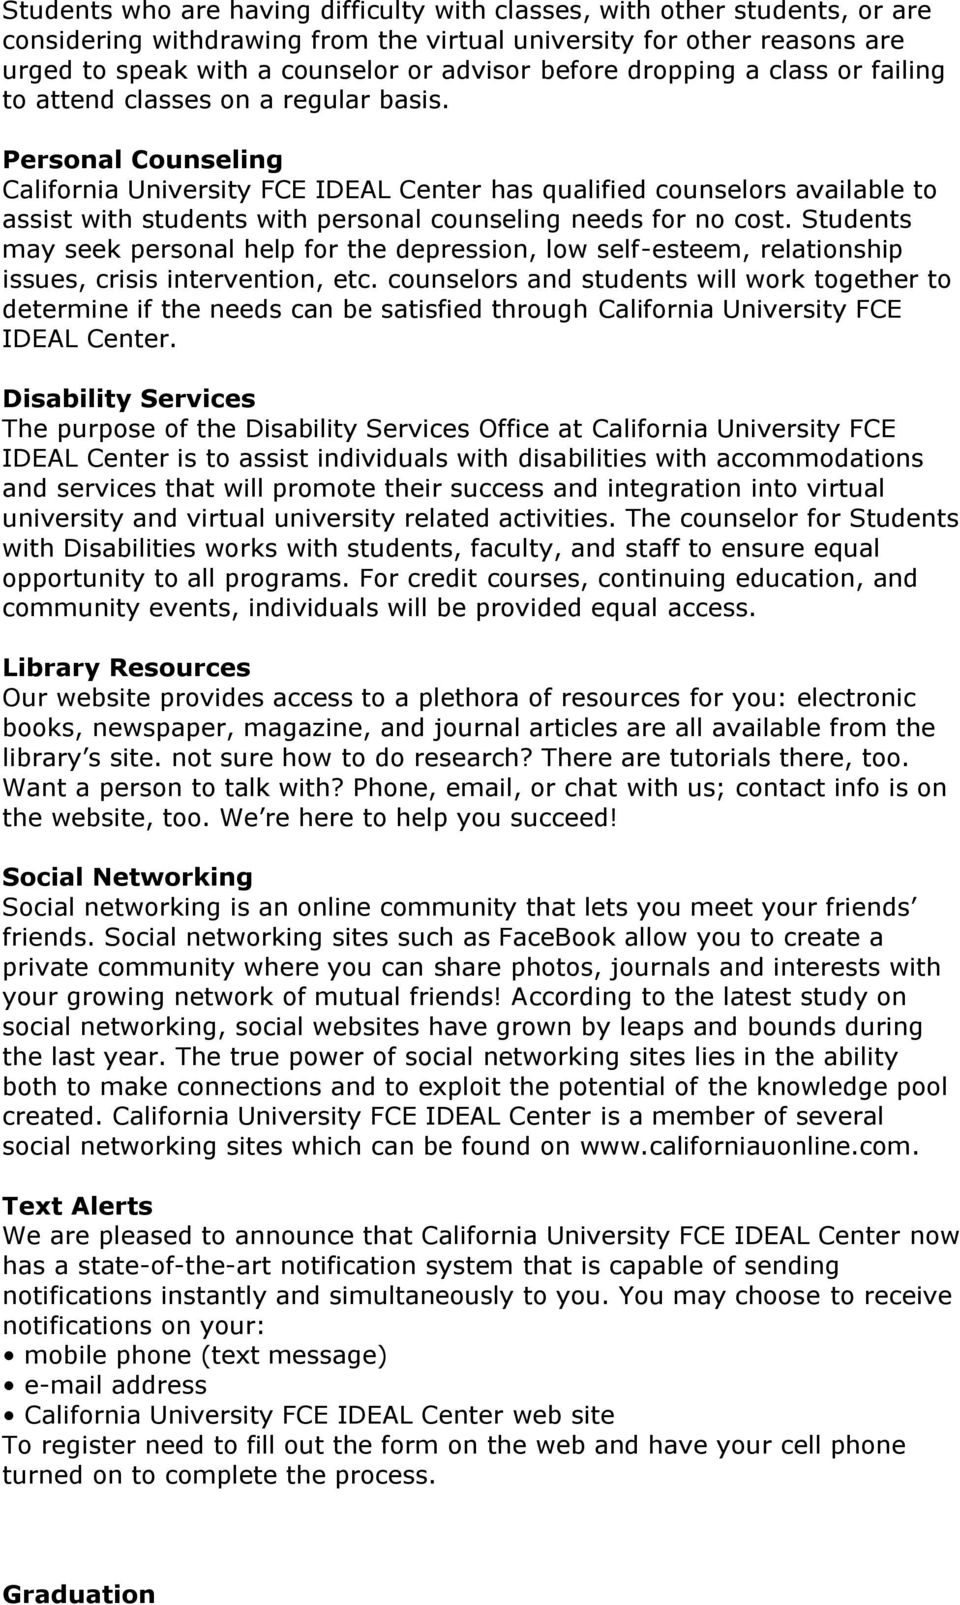 Personal Counseling California University FCE IDEAL Center has qualified counselors available to assist with students with personal counseling needs for no cost.